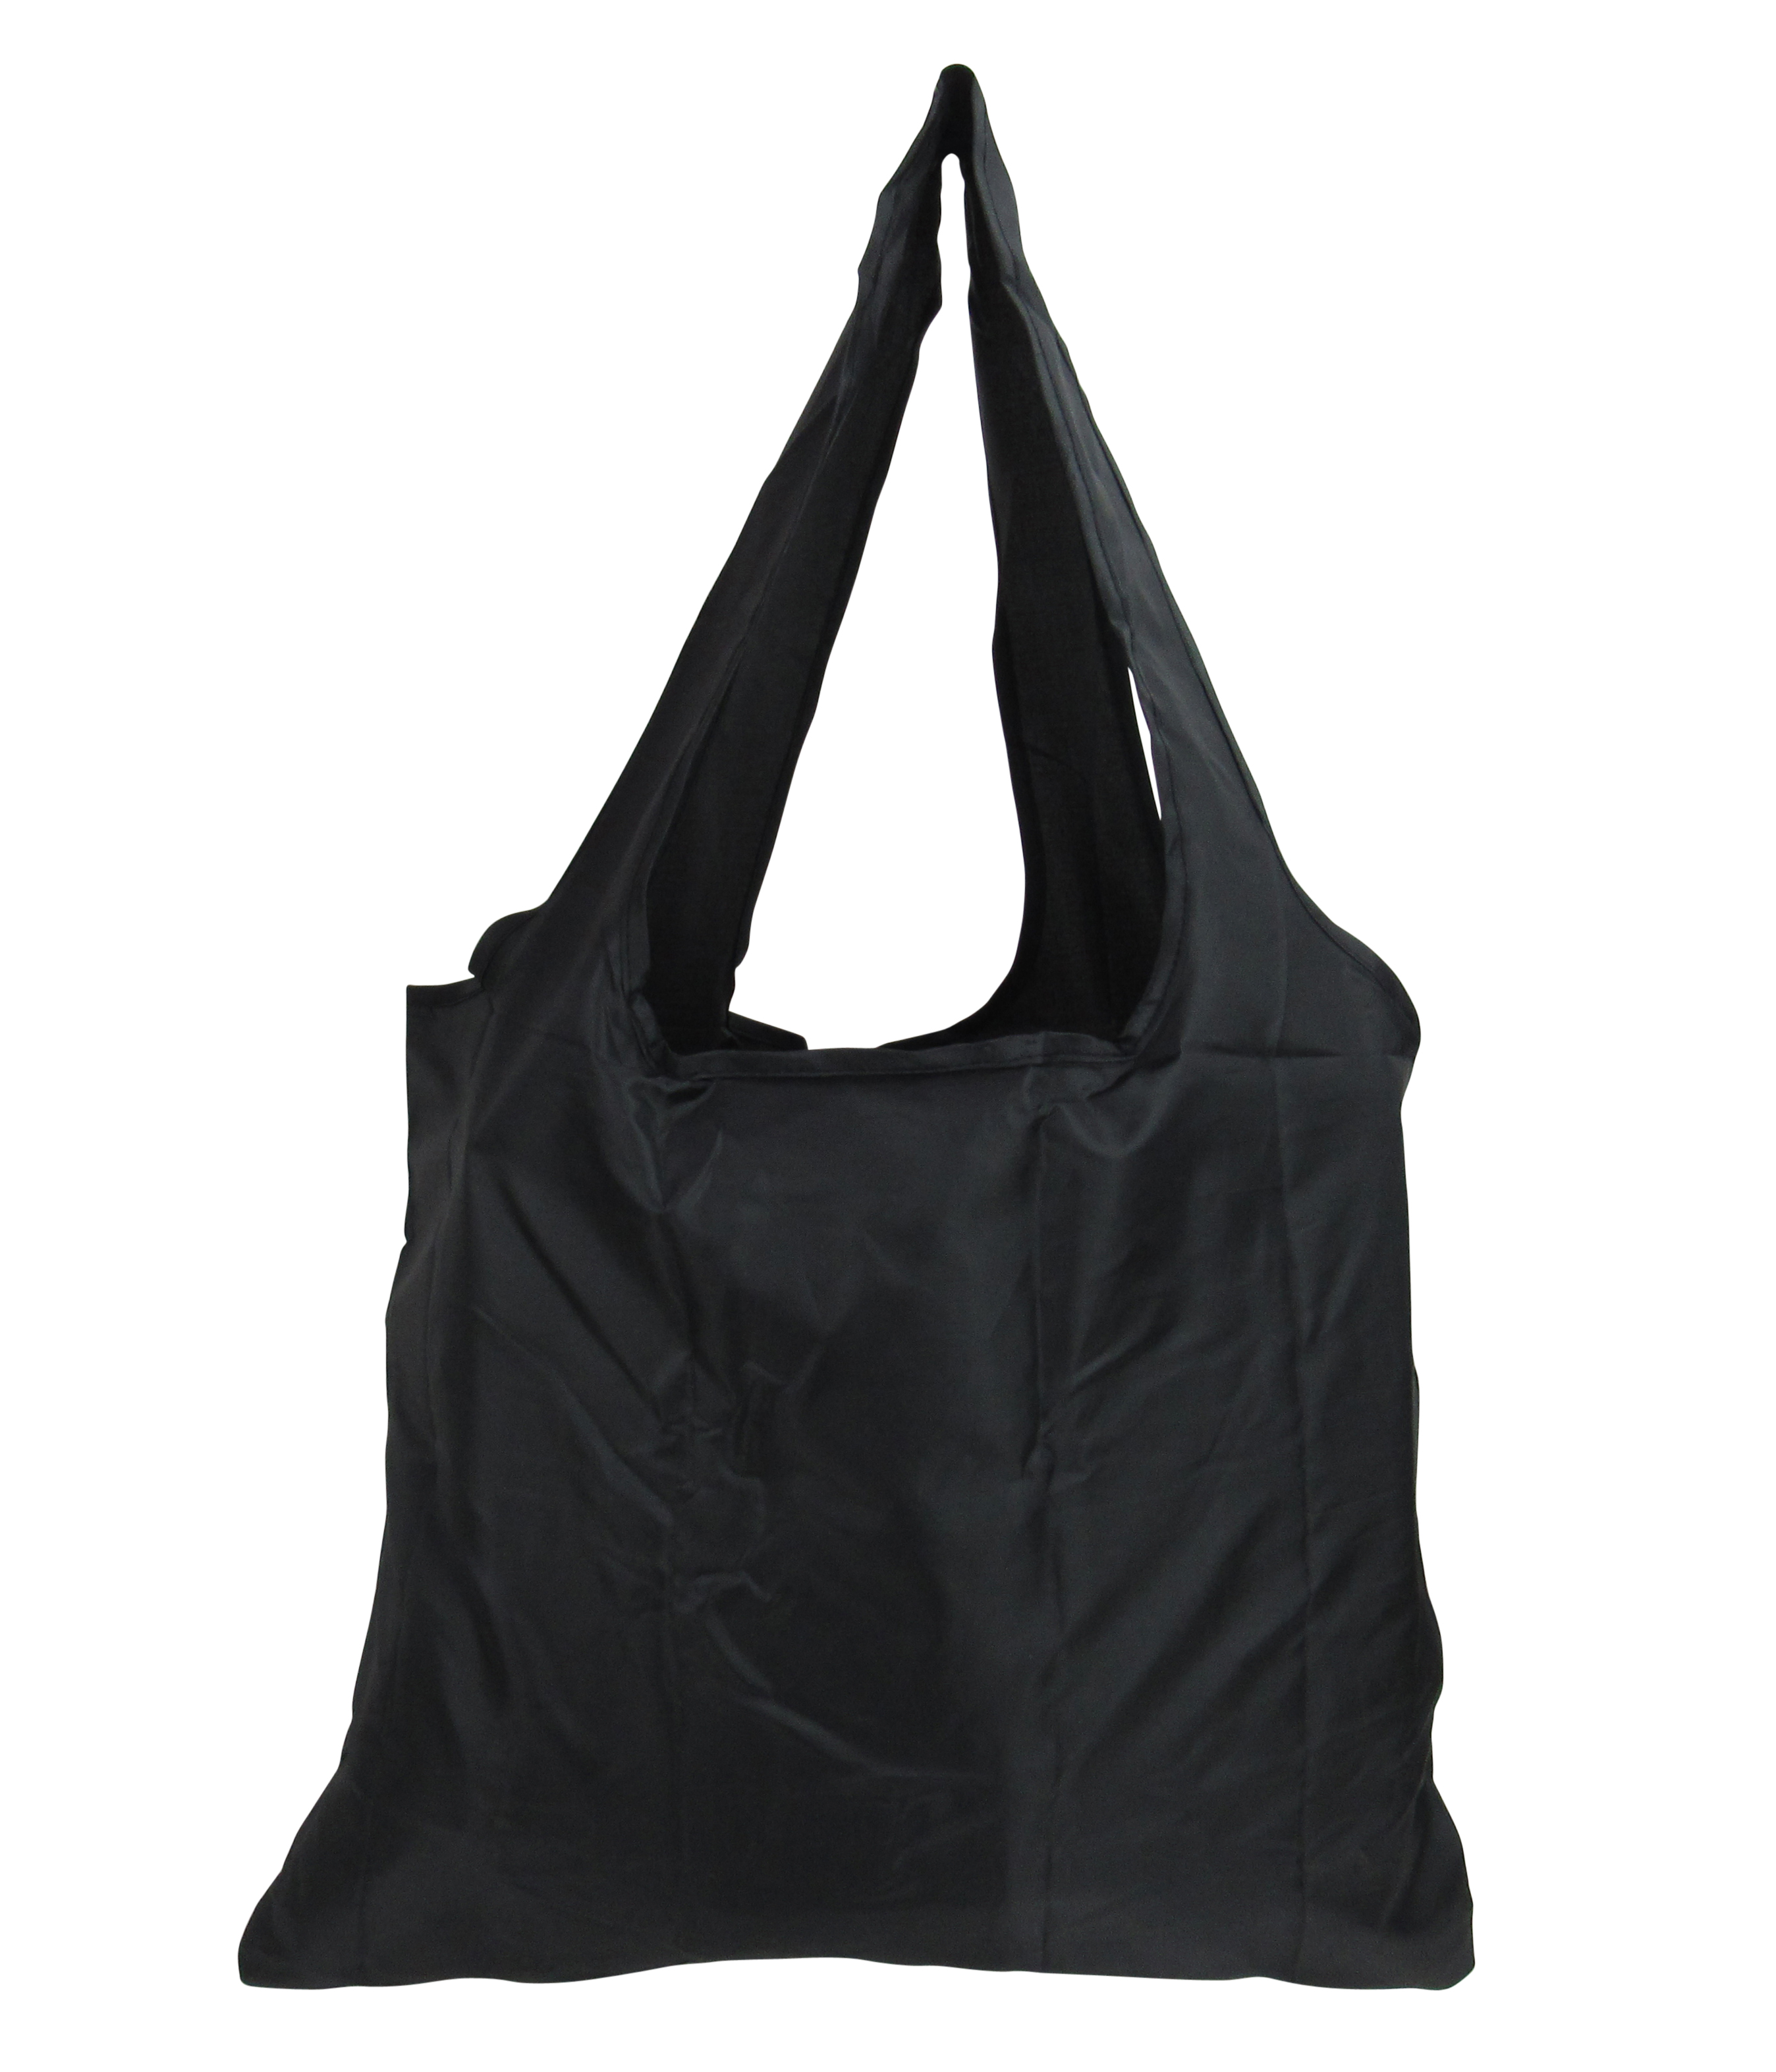 My1261 Whole Reusable Foldable Tote Bag